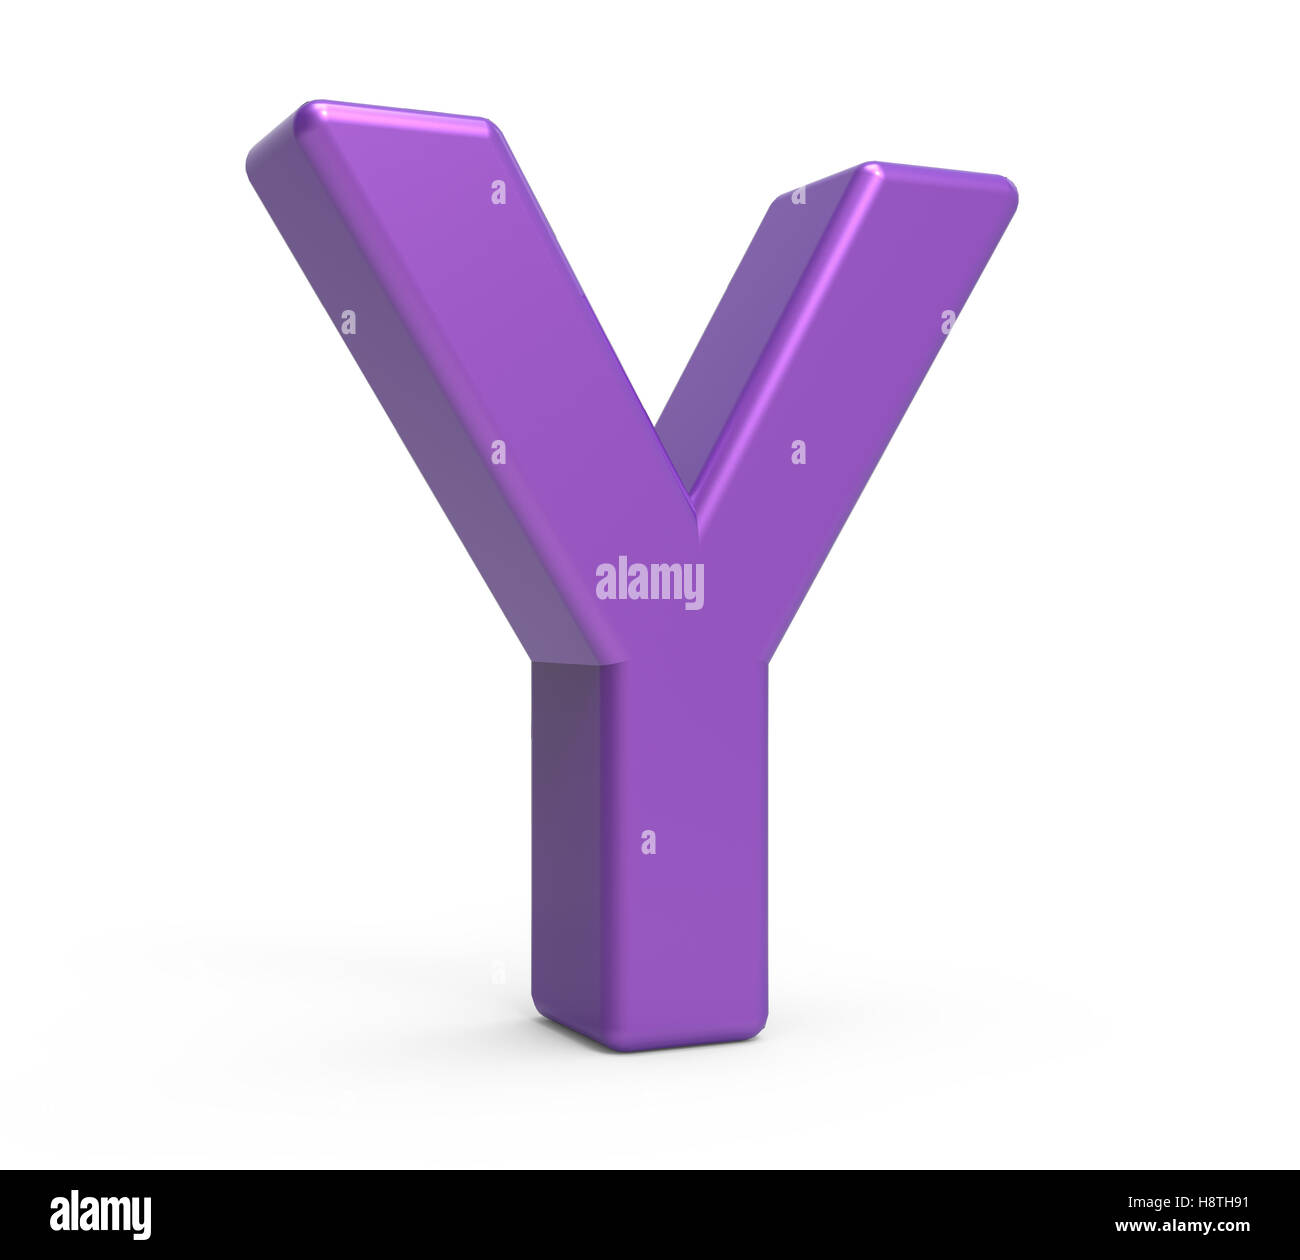 Left leaning 3d rendering purple letter y isolated white left leaning 3d rendering purple letter y isolated white background sciox Images